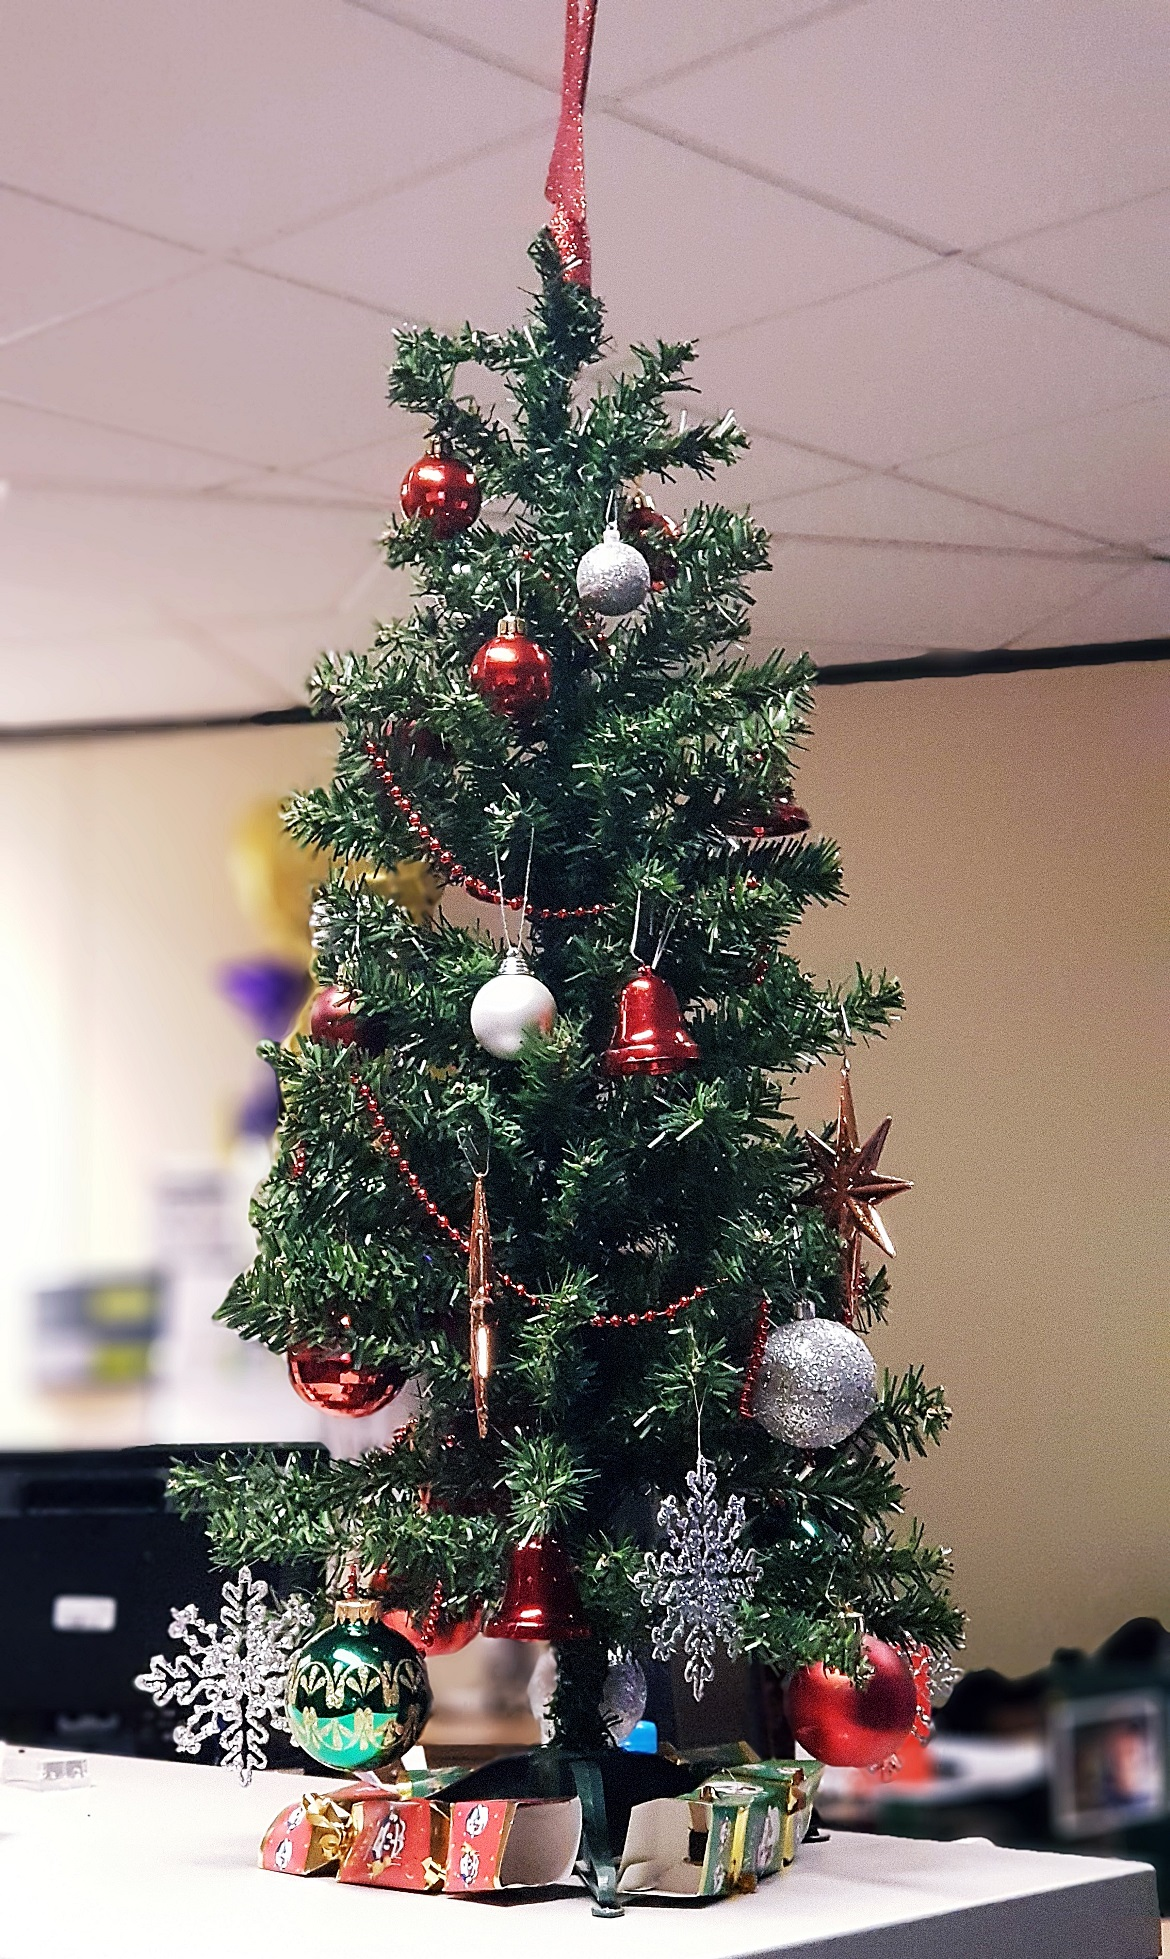 Work Christmas tree - December Monthly Recap by BeckyBecky Blogs